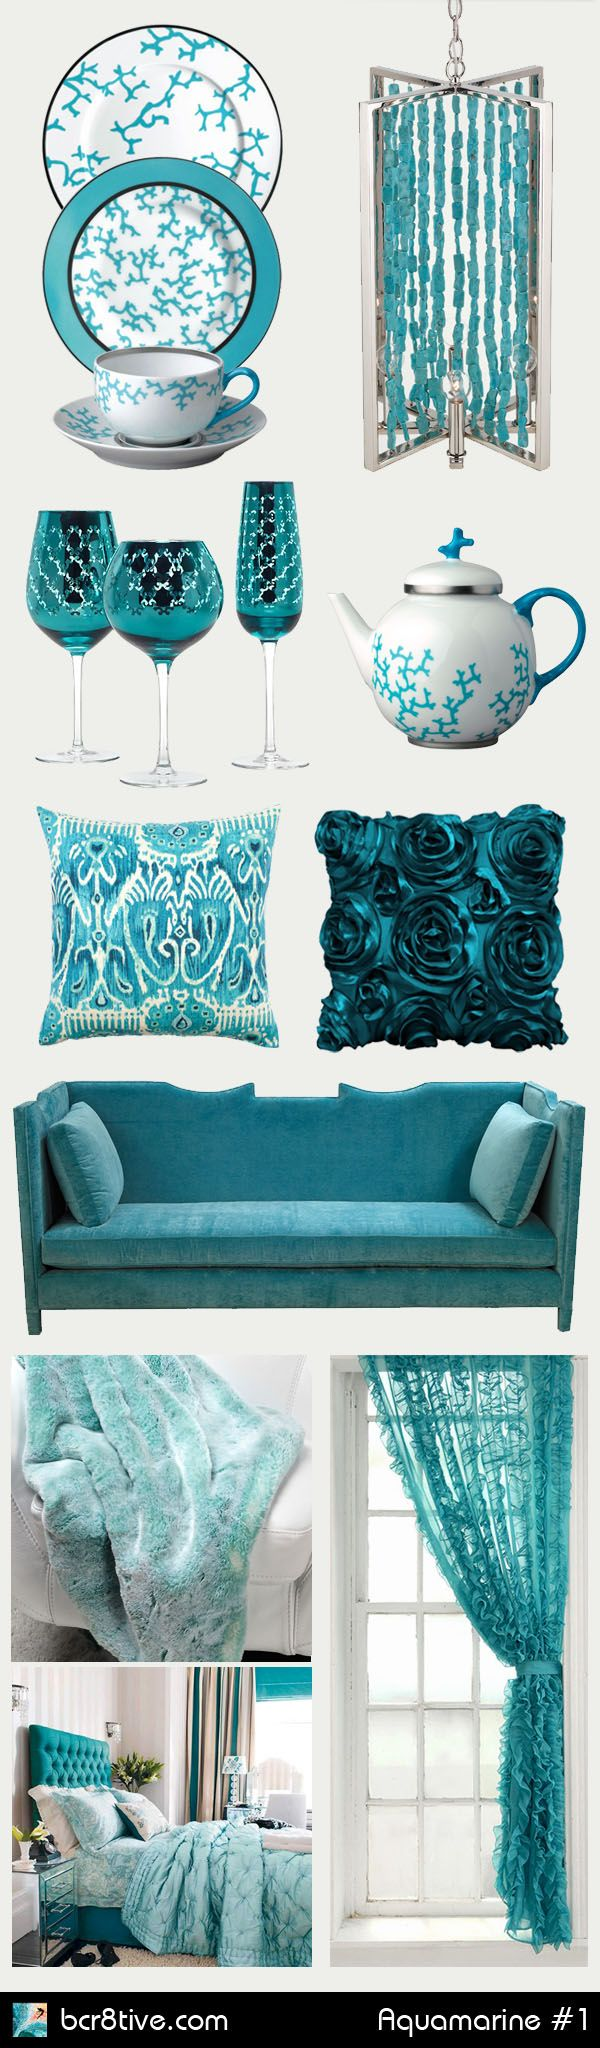 decor color design brown hair living room palette flowers and home turquoise aqua